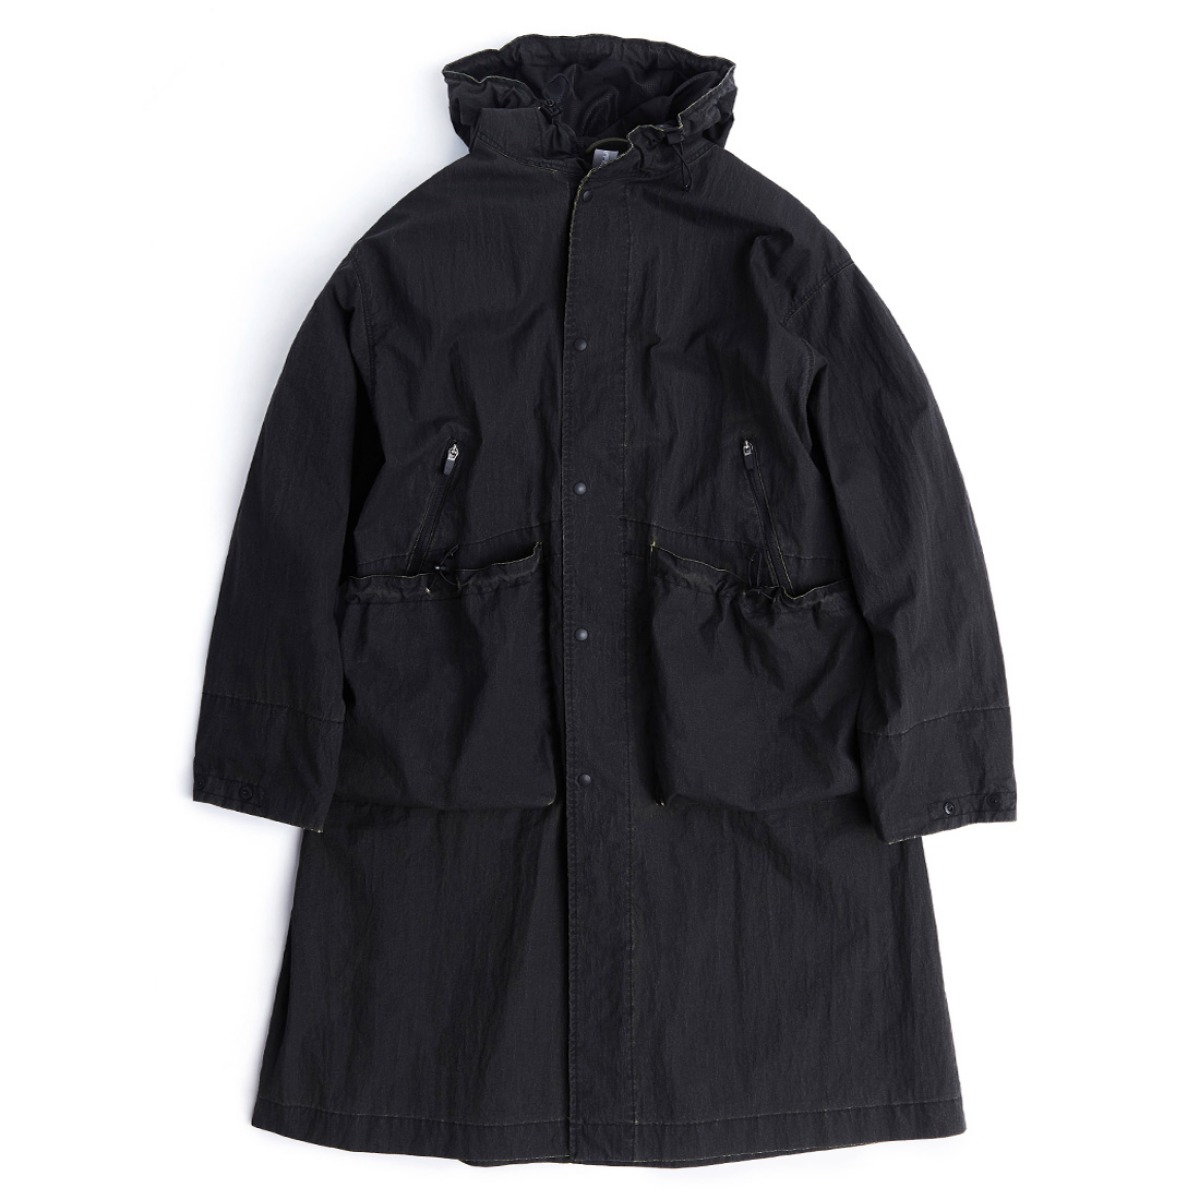 [UNAFFECTED] OVERSIZED LONG PARKA 'CRACKED BLACK'